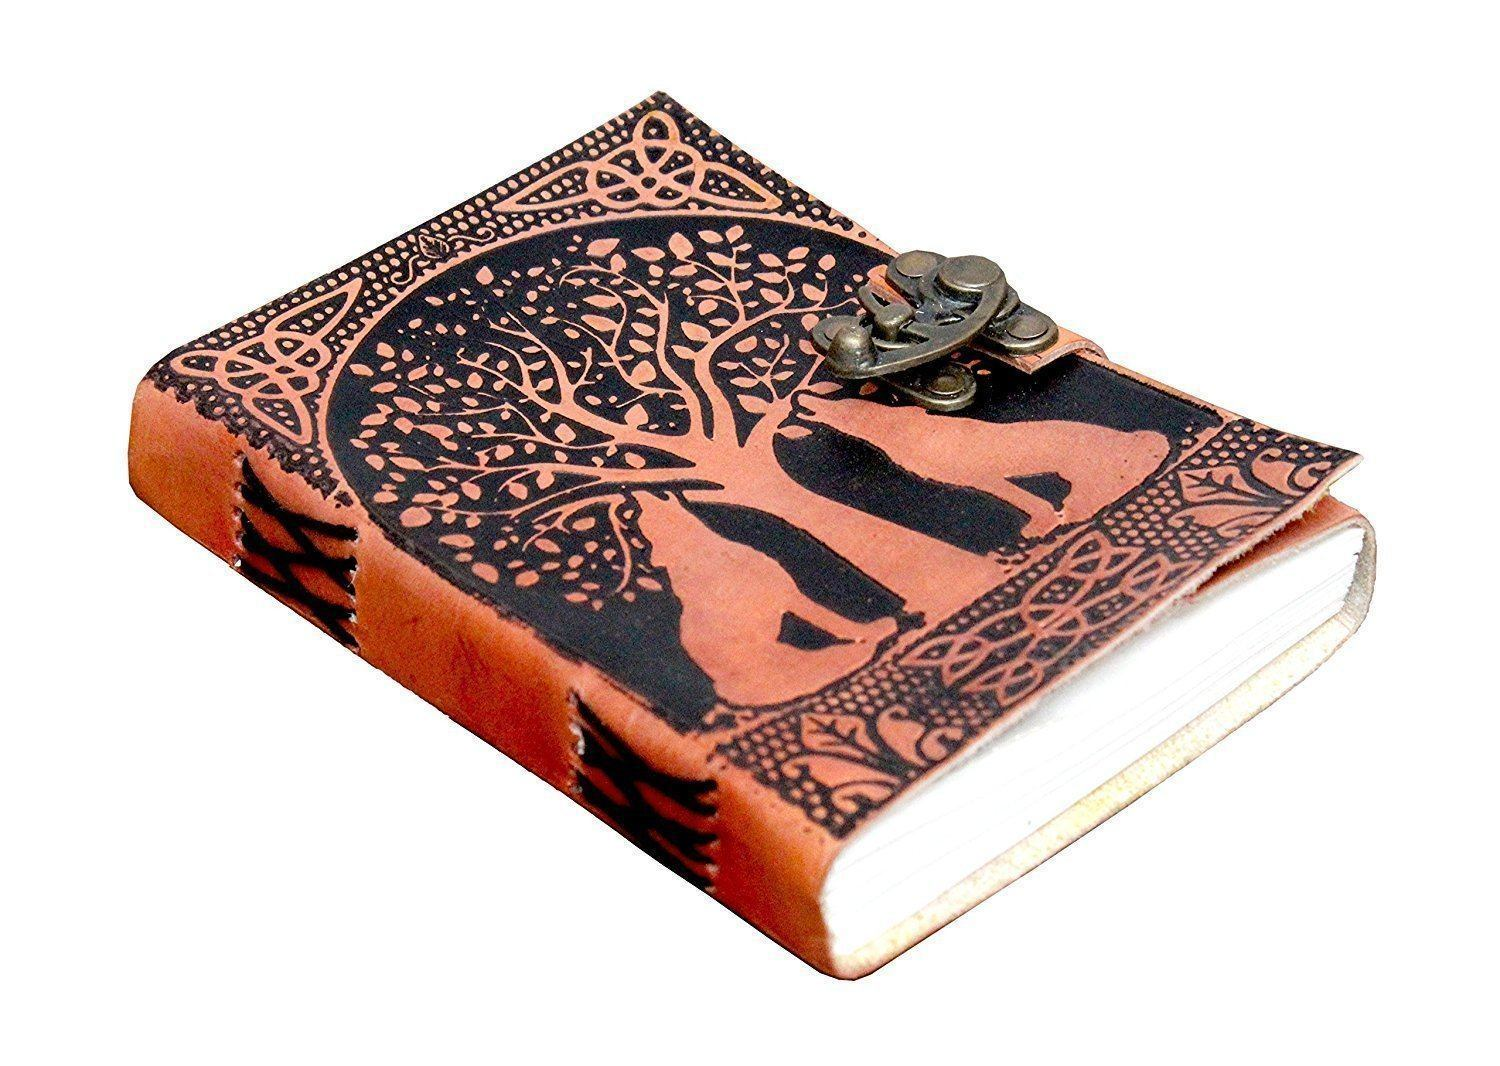 ININDIA Pure Genuine Real Vintage Hunter Leather Handmade Paper Notebook Diary For Office Home To Write Poem Daily Update With Attractive Metal Lock And Engraved Tree And Dog 7 Inches(All Colors)